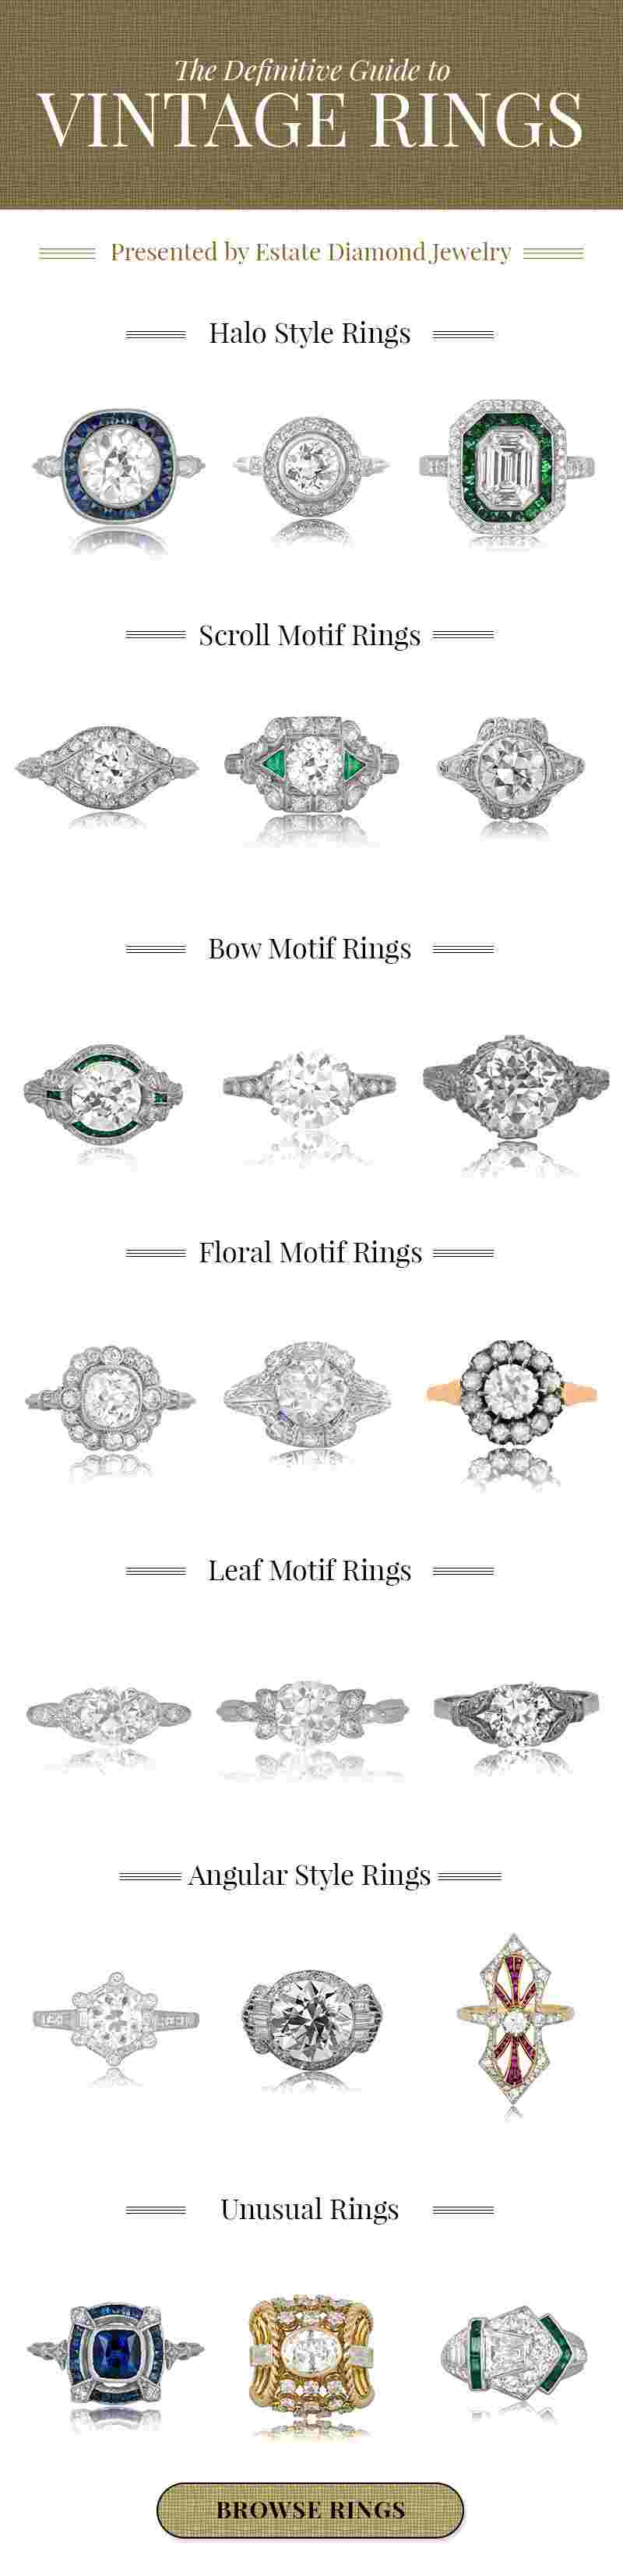 ring round shape duquet delicate cut today scale engagement color the rings of important diamond christopher most single chicago jewelry style fine characteristic is trends and trend a every evanston unifying vintage in styles